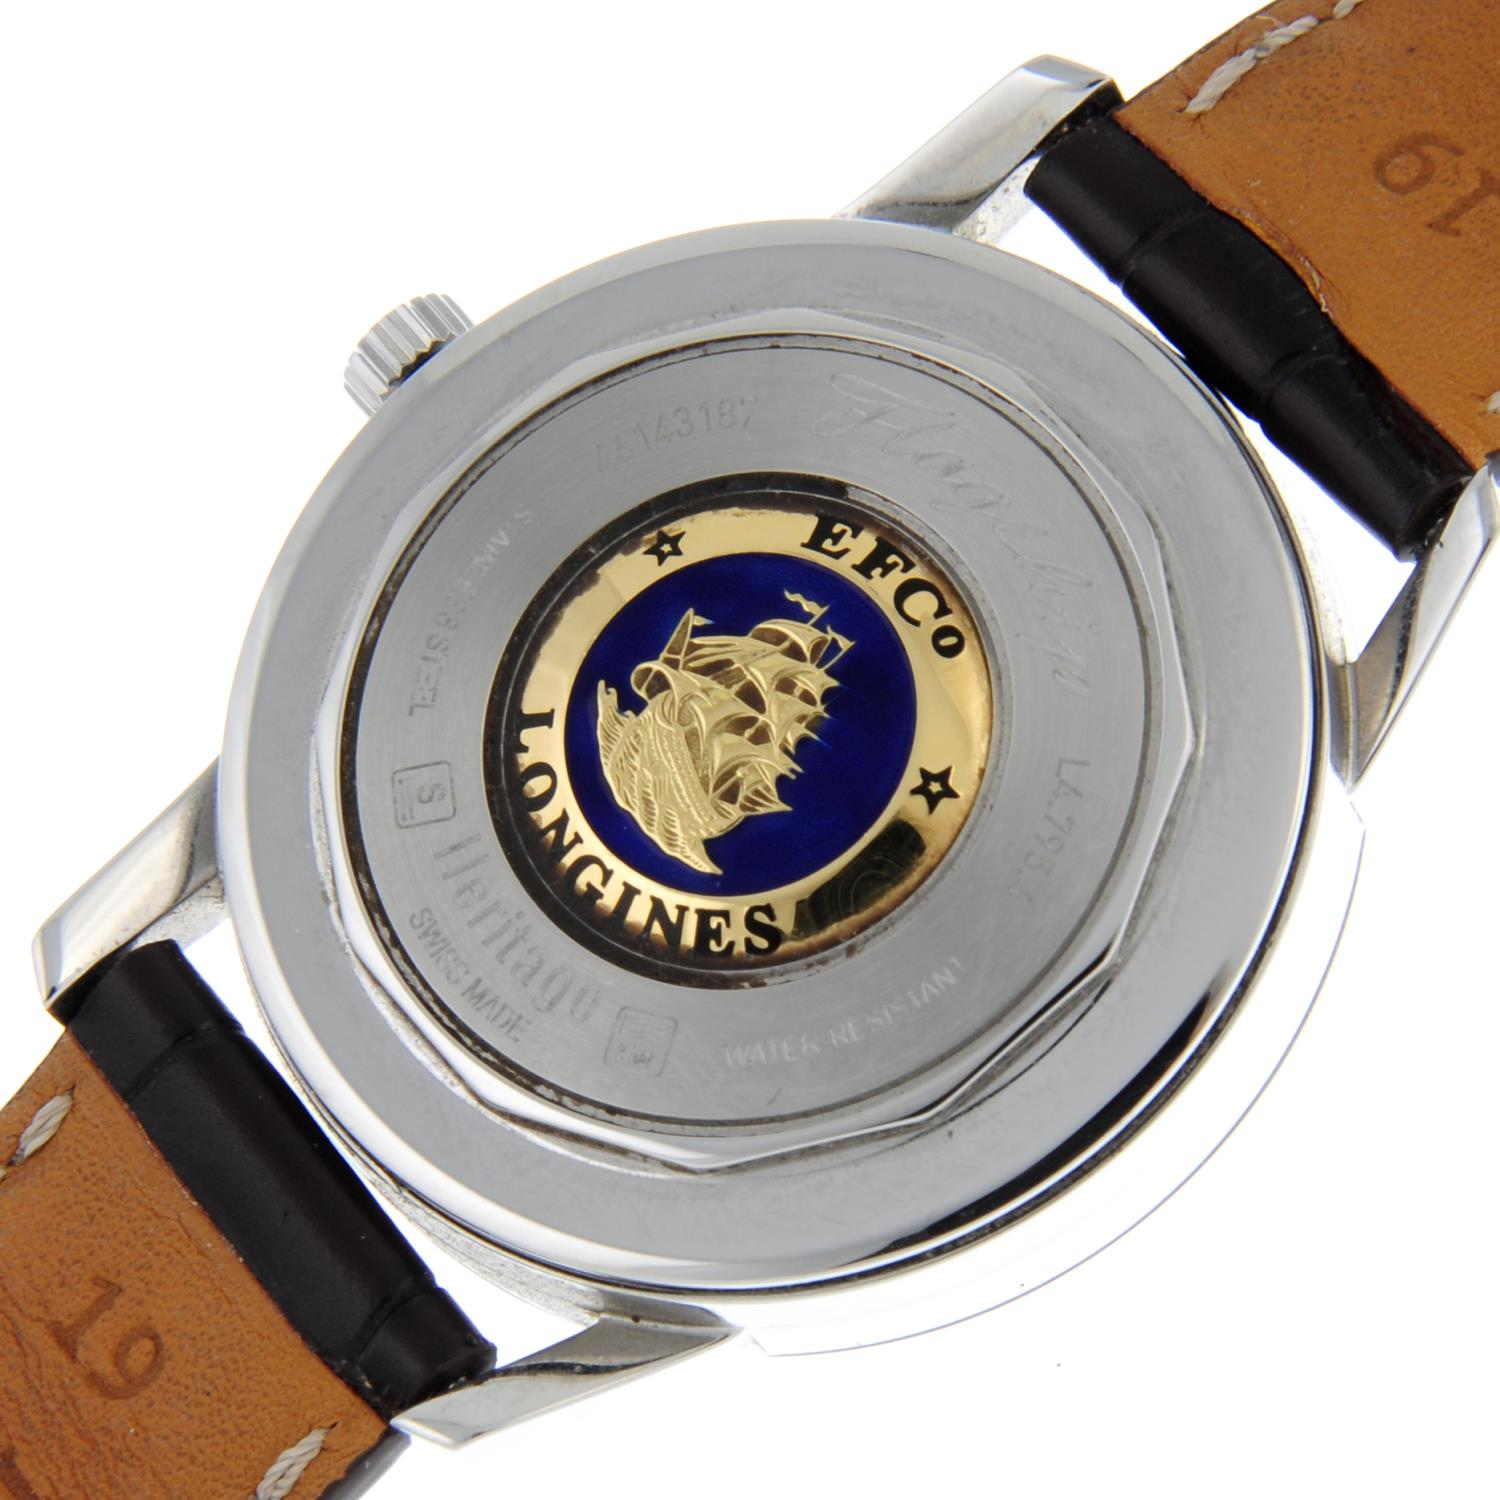 LONGINES - a Flagship wrist watch. - Image 6 of 6